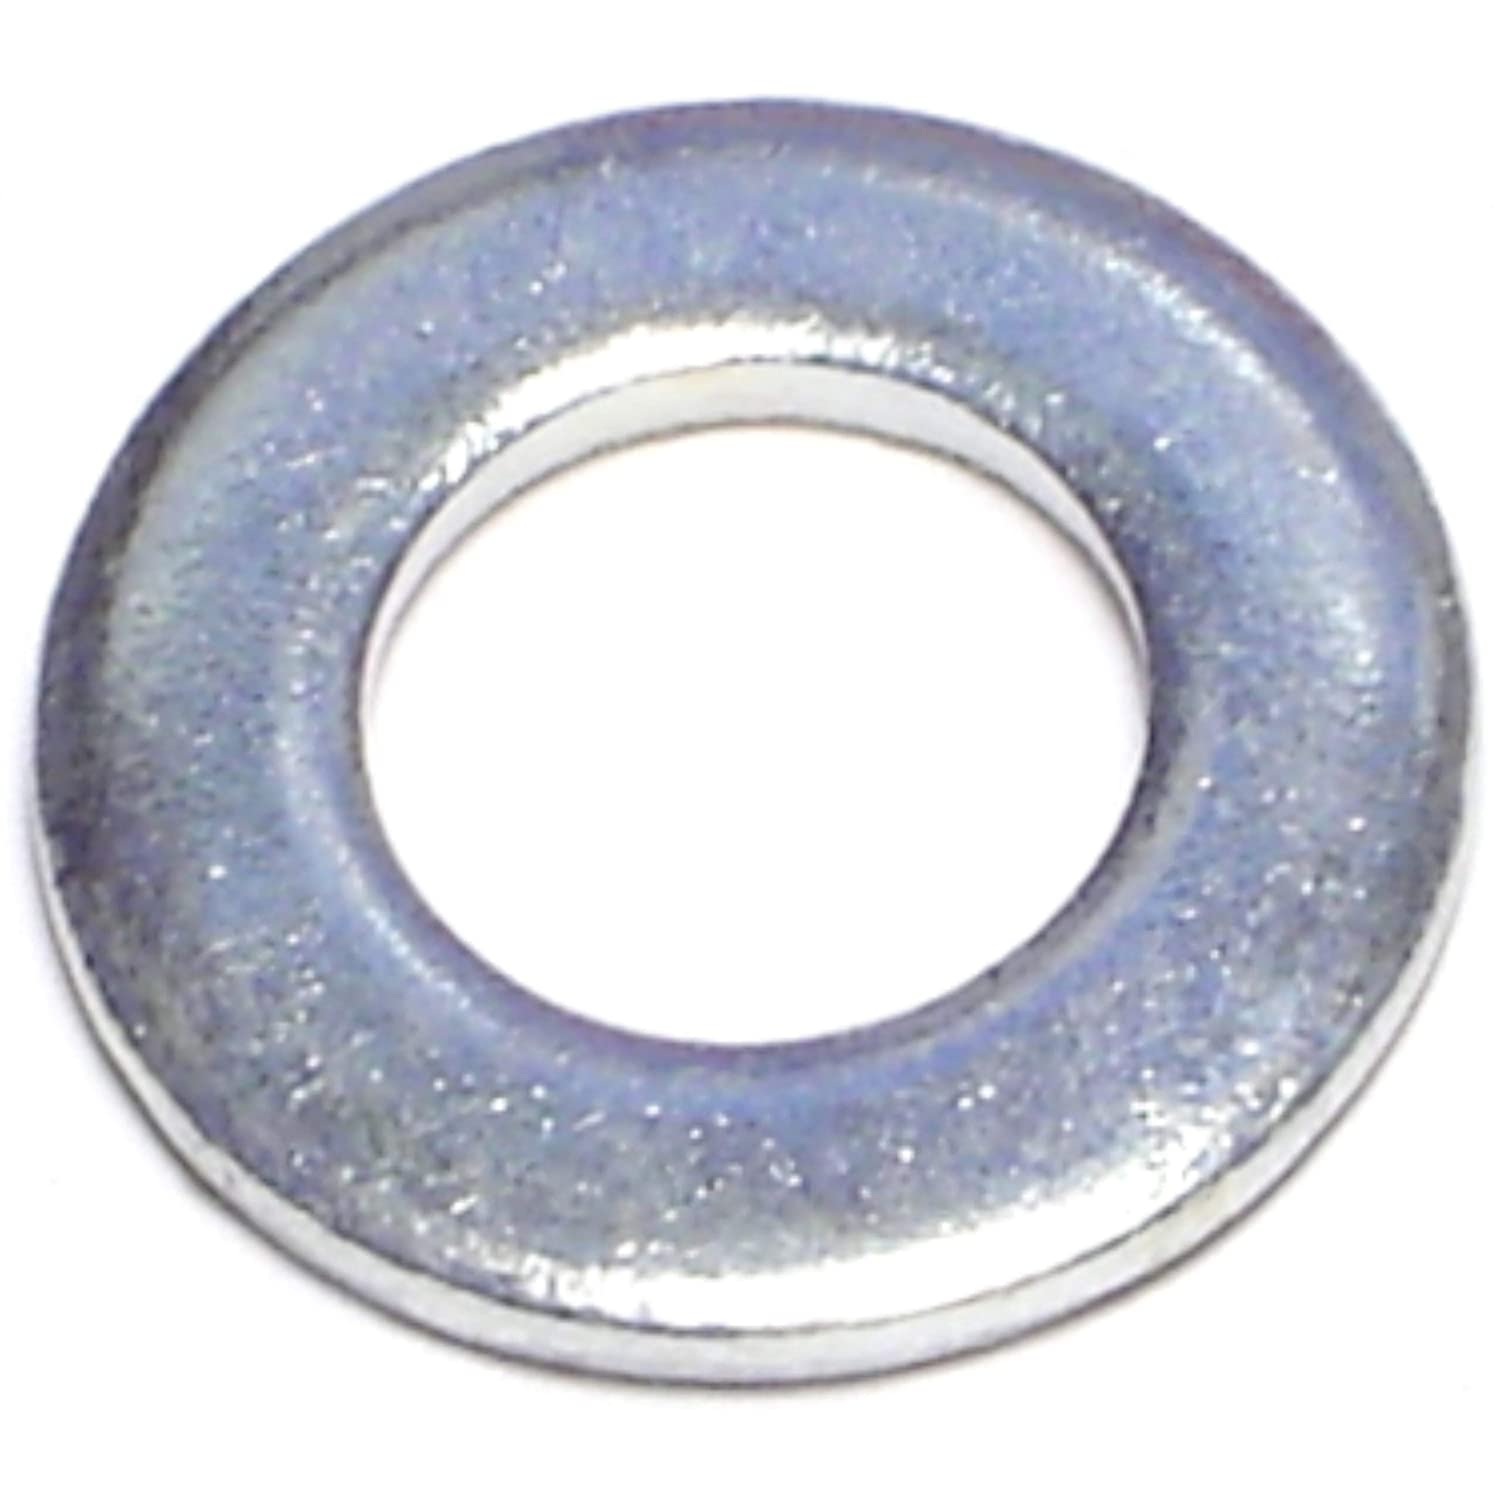 12mm Piece-15 Hard-to-Find Fastener 014973272586 Class 8 Flat Washers